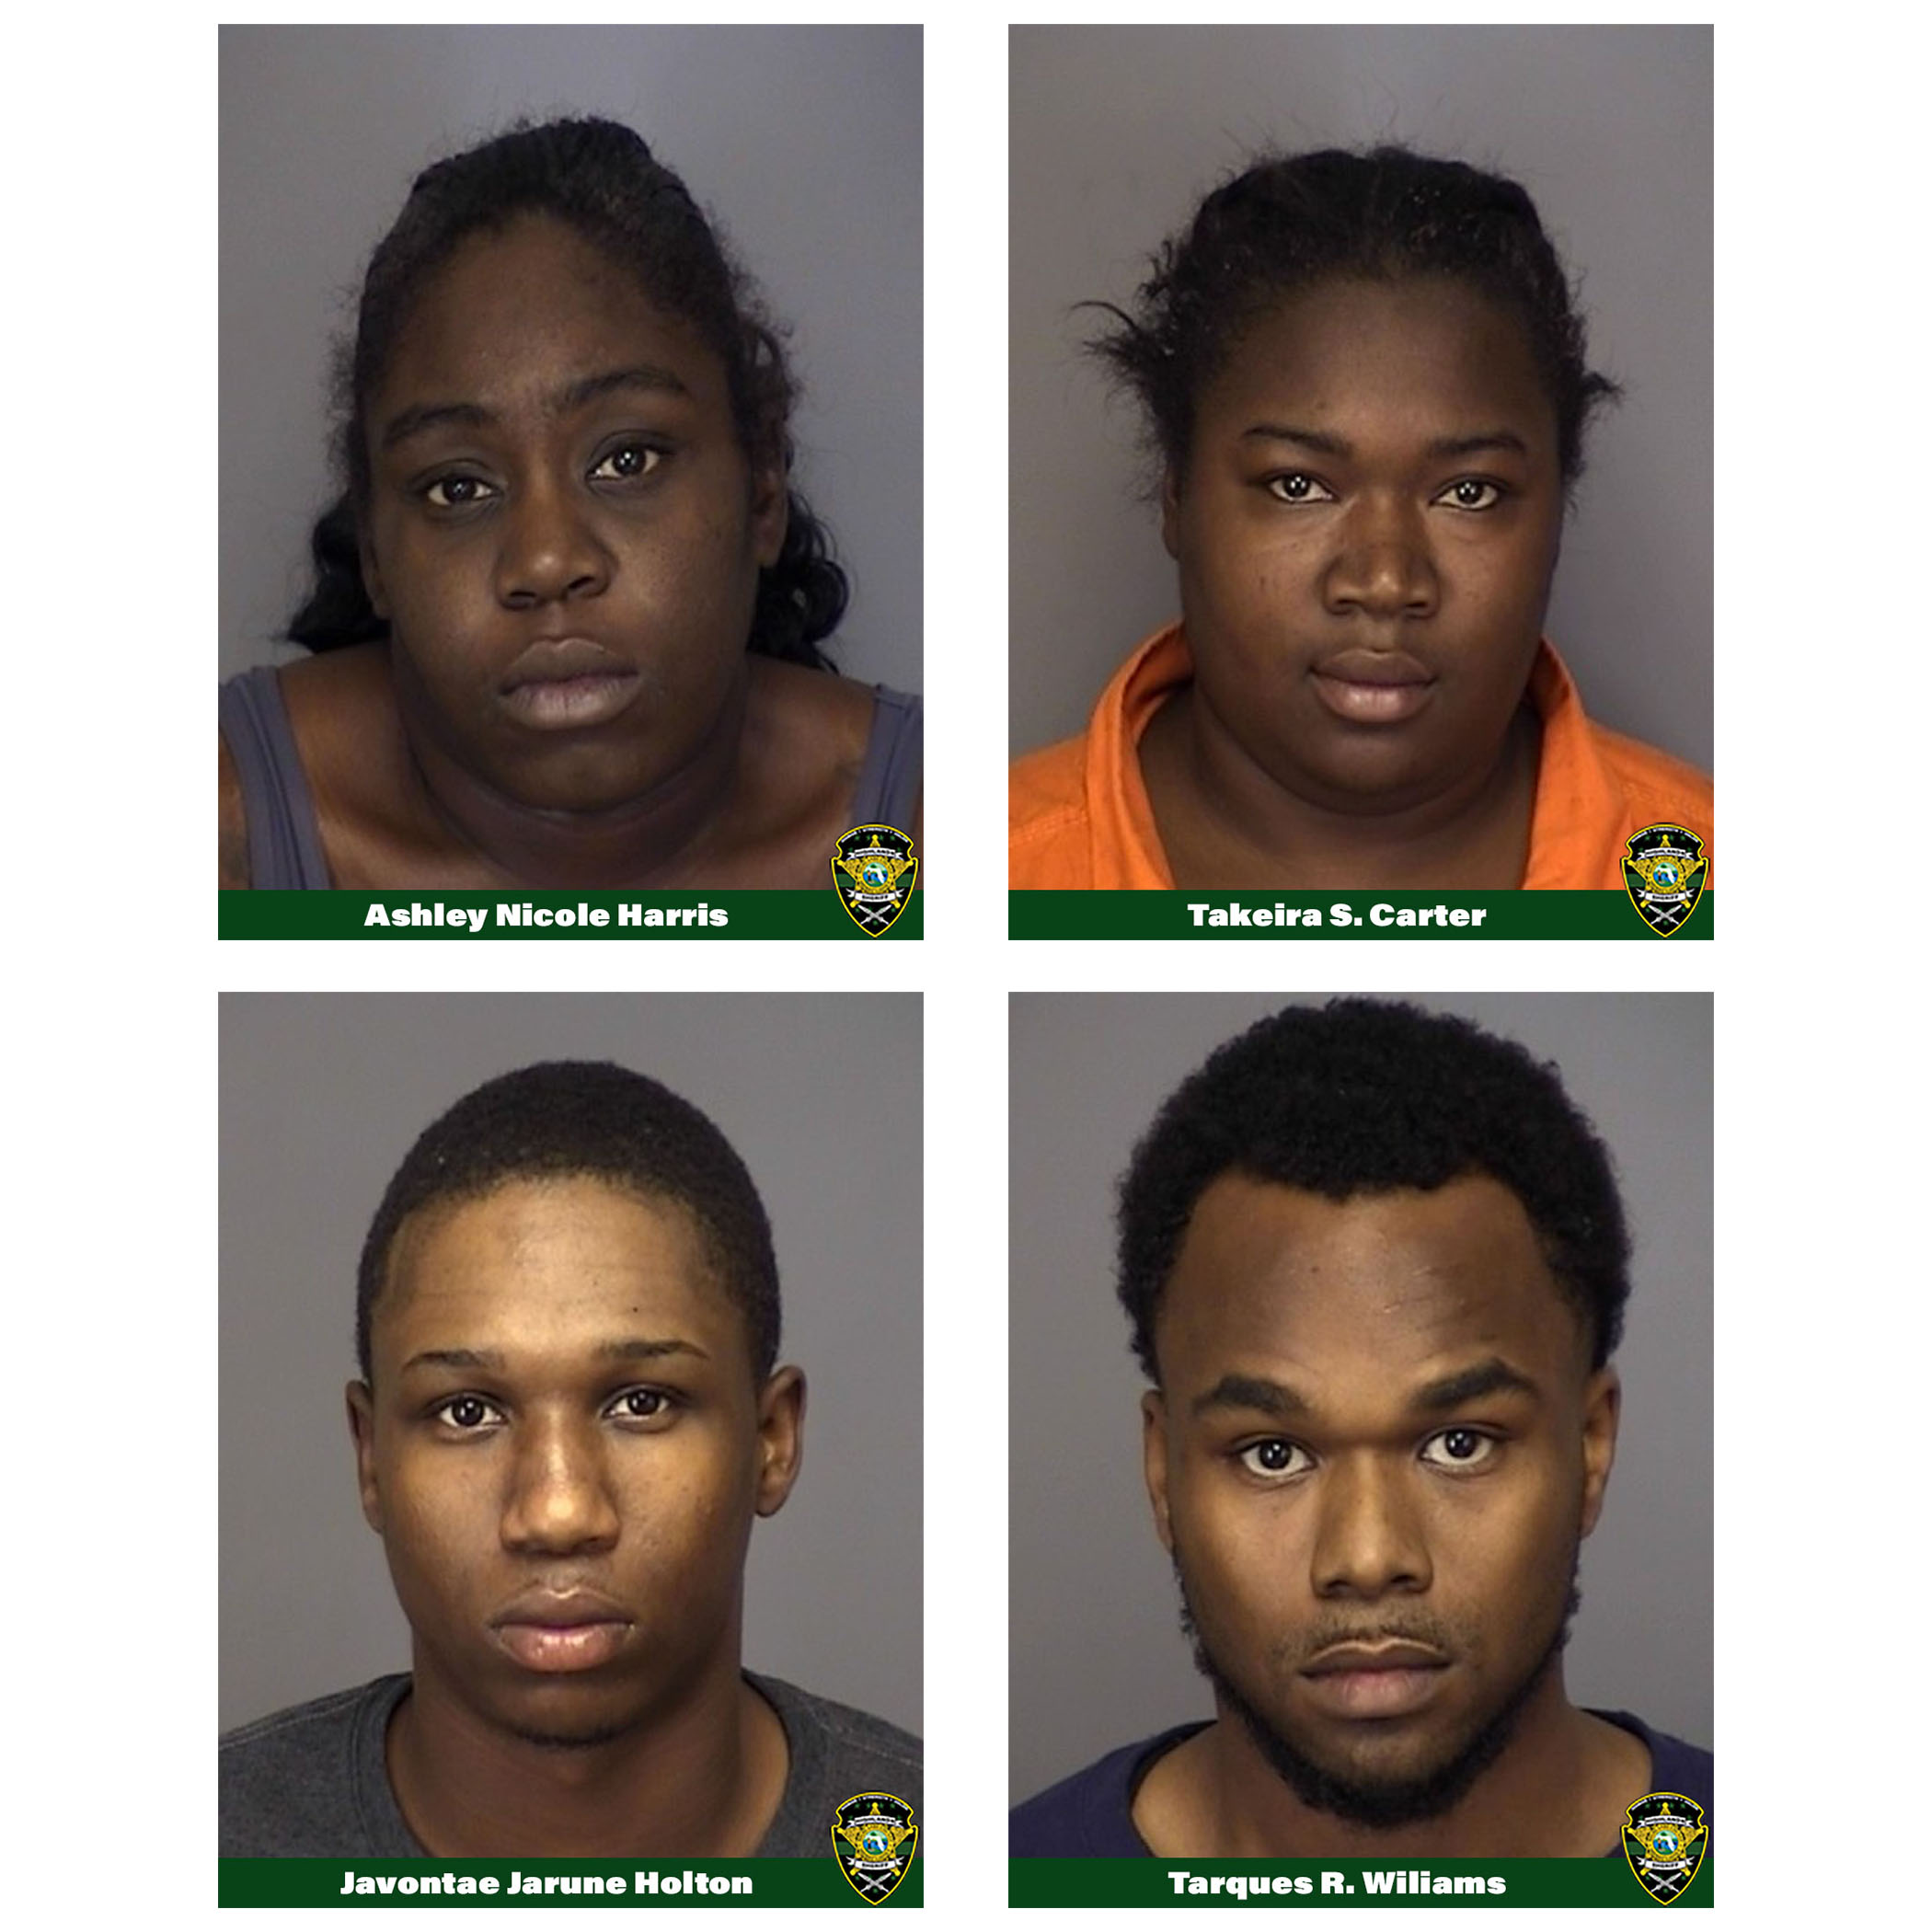 mugshots of the four suspects